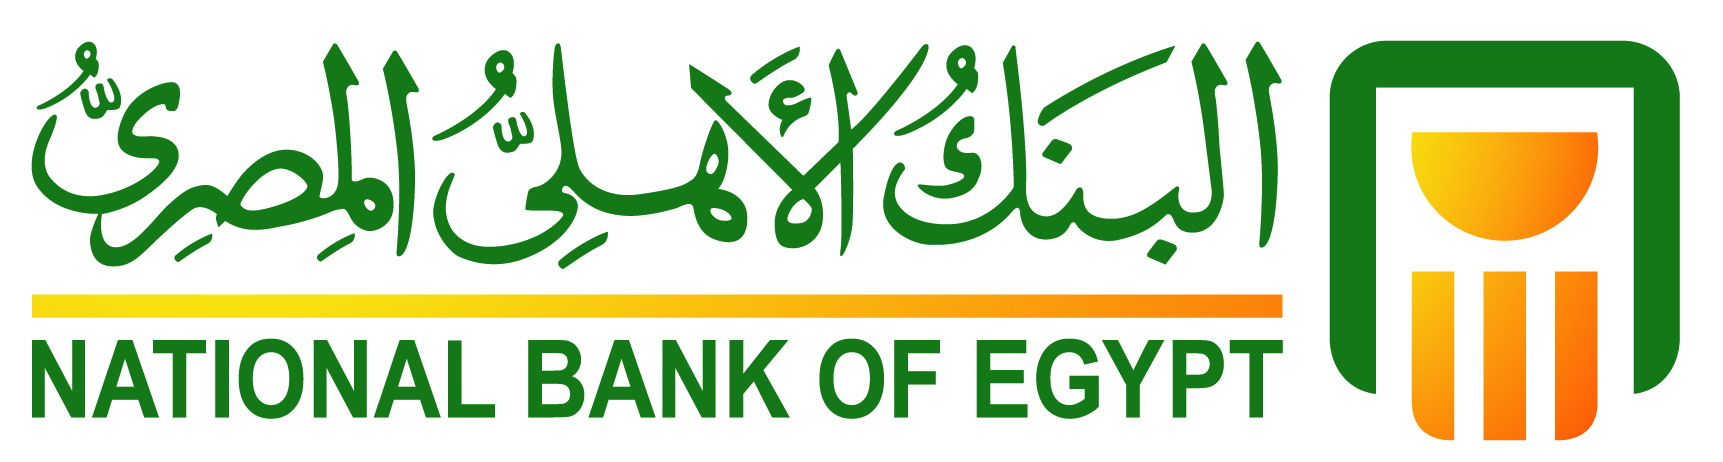 National Bank Of Egypt logo